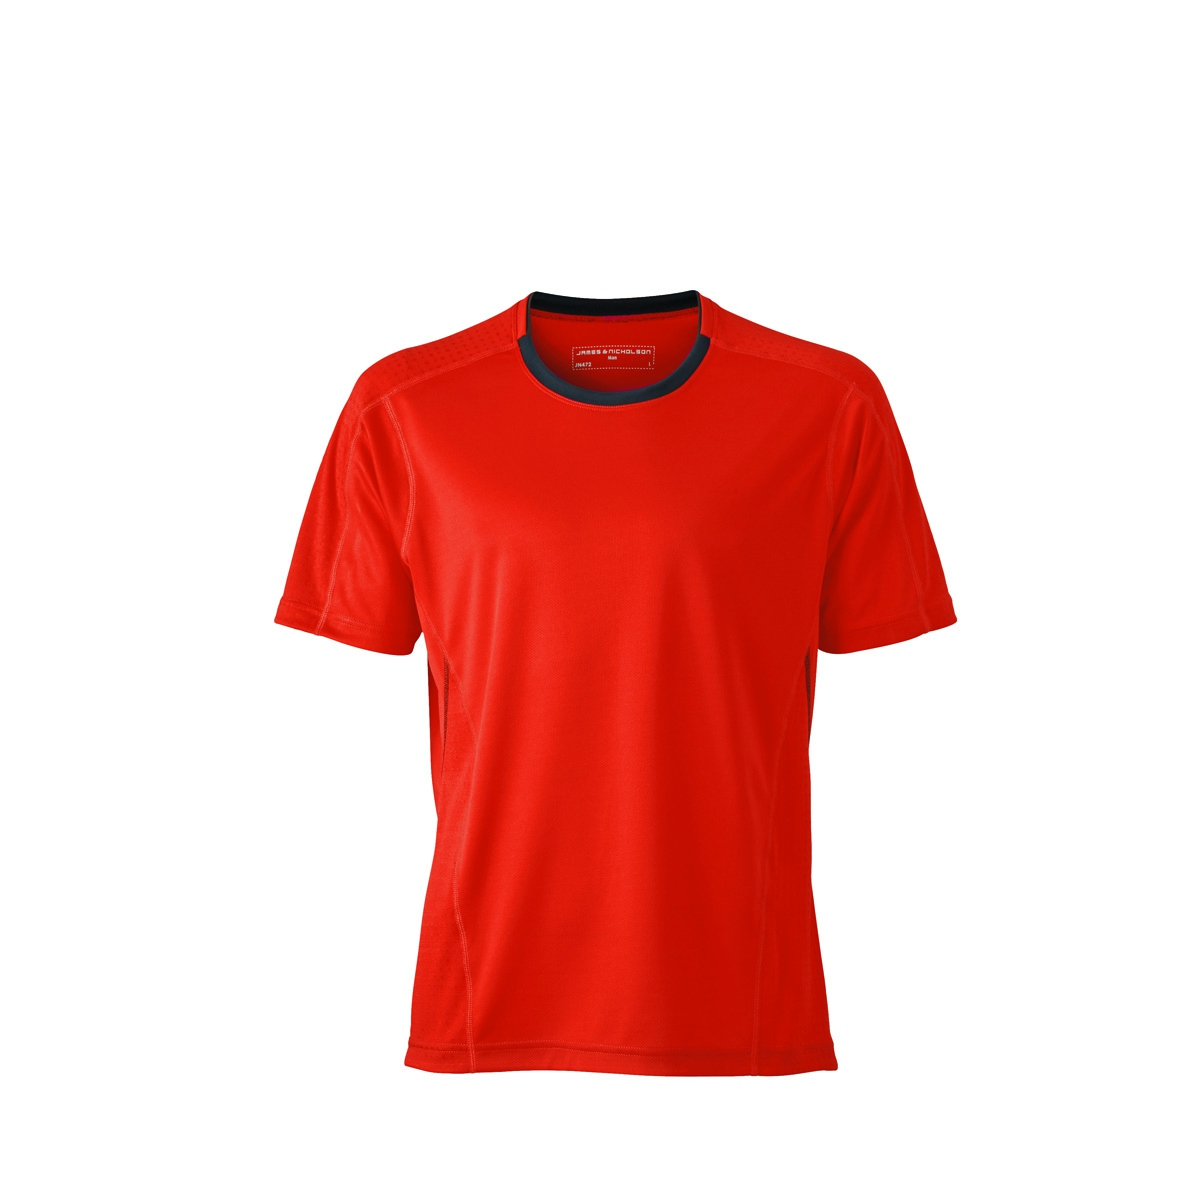 t shirt respirant running jogging jn472 rouge grenadine homme course pied. Black Bedroom Furniture Sets. Home Design Ideas